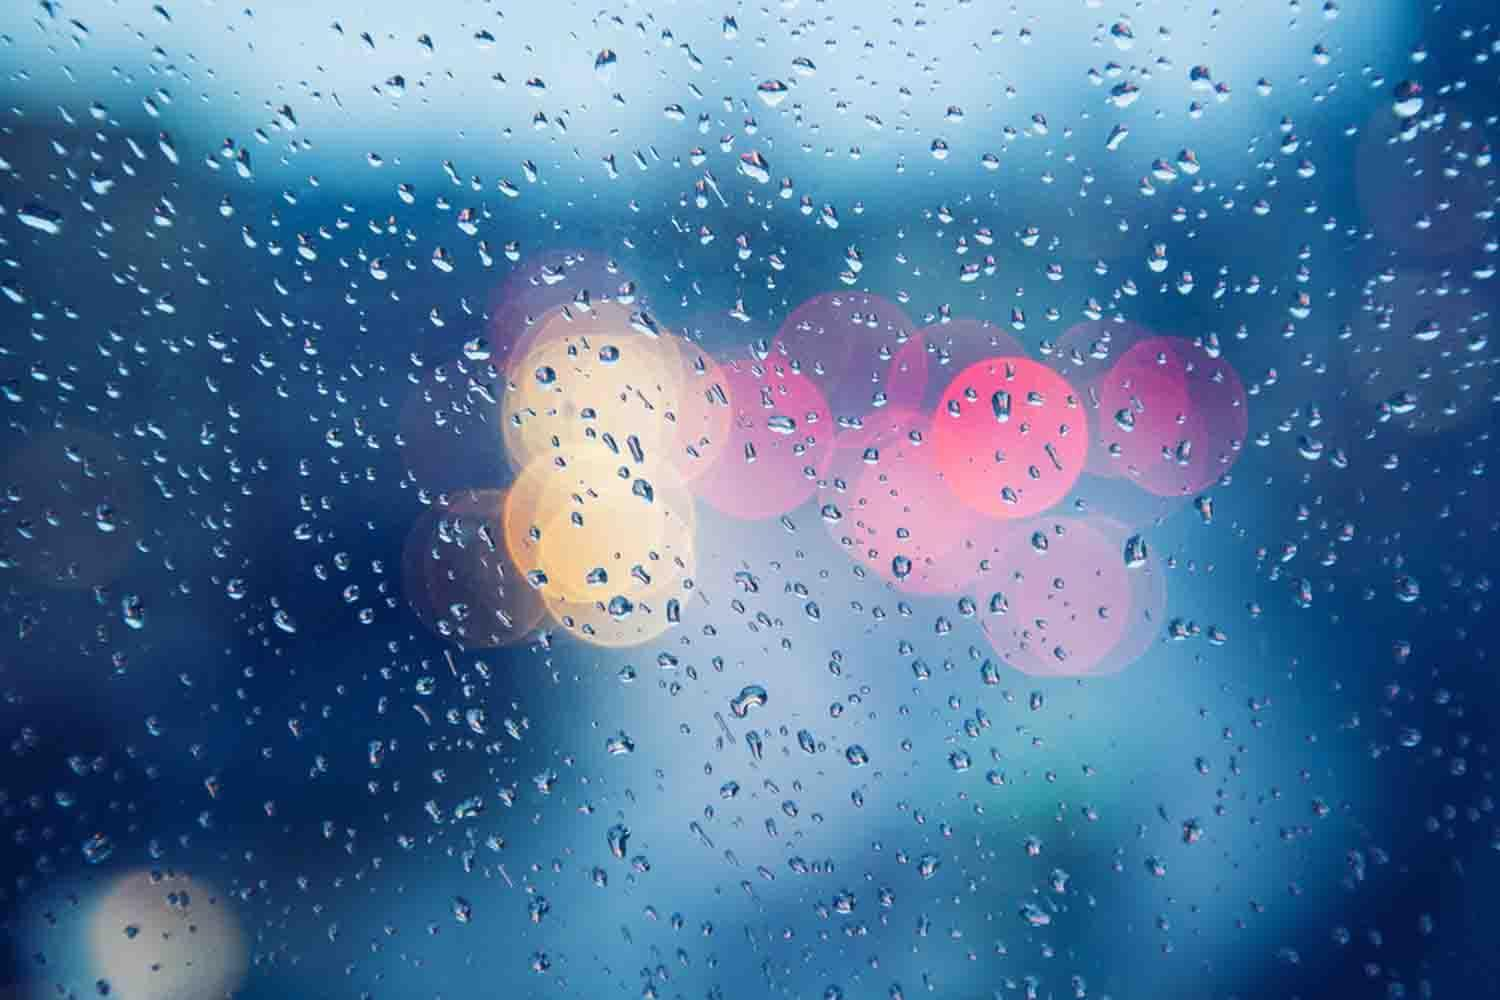 Rain Wallpaper For Android Apk Download